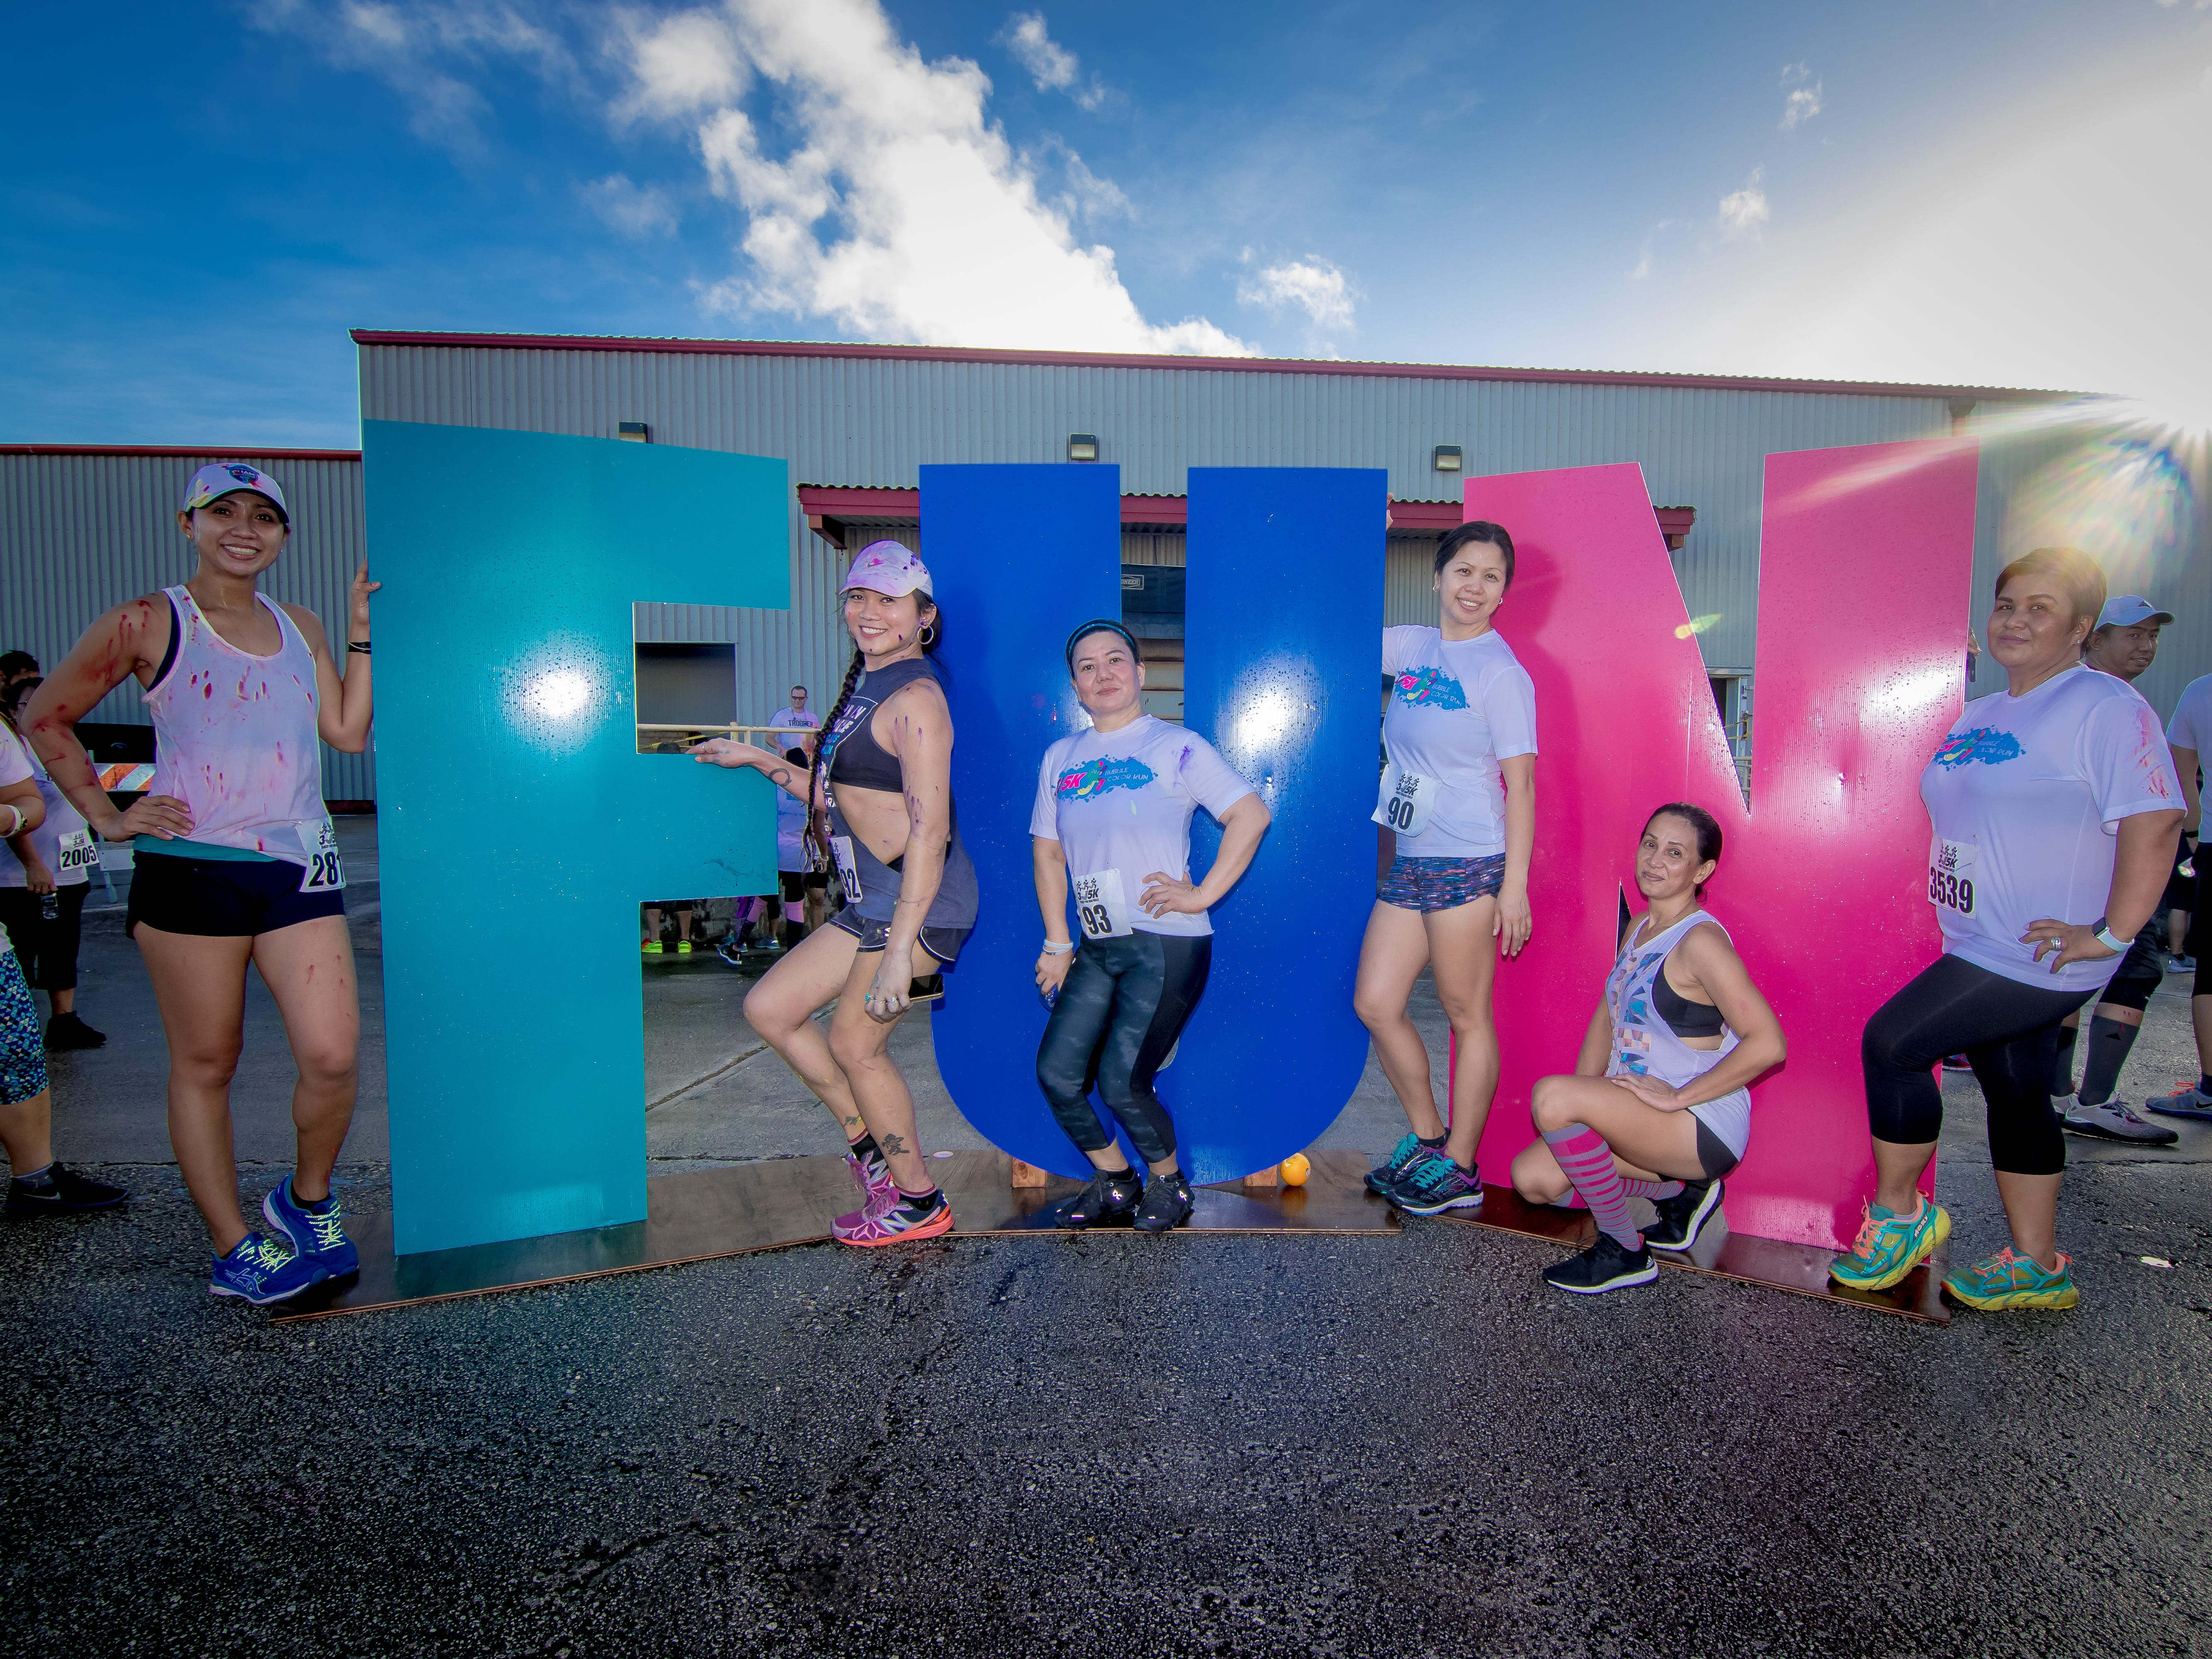 """Aileen Honrado, Kitkat Casin, Chit Cabanting, Tez Schmidt, Chato Camaganacan, and Jhoane Antonio pose at the display signs during the 13th Annual Triple J Family 10K/5K Run themed the """"Bubble Color Run"""" held  at Tripple J Complex in Tamuning on Nov.17."""